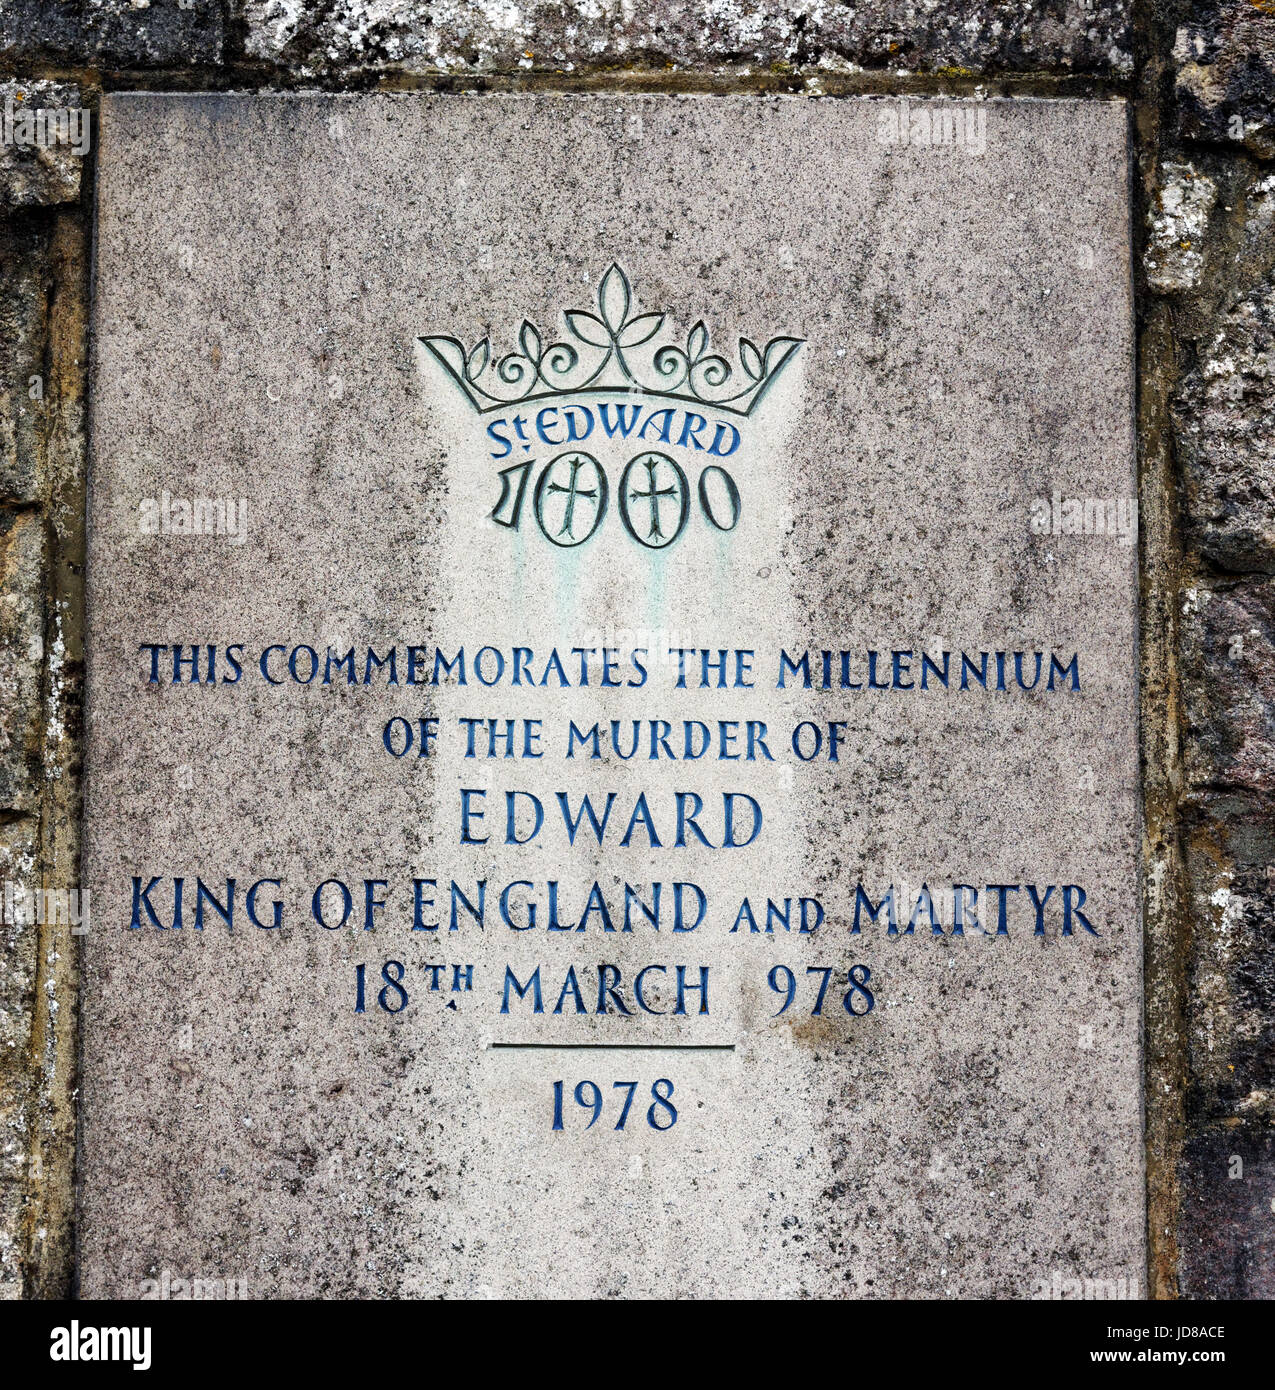 A stone in Corfe Castle to commemorate the millennium of the murder of King Edward the Martyr of England in 978 - Stock Image